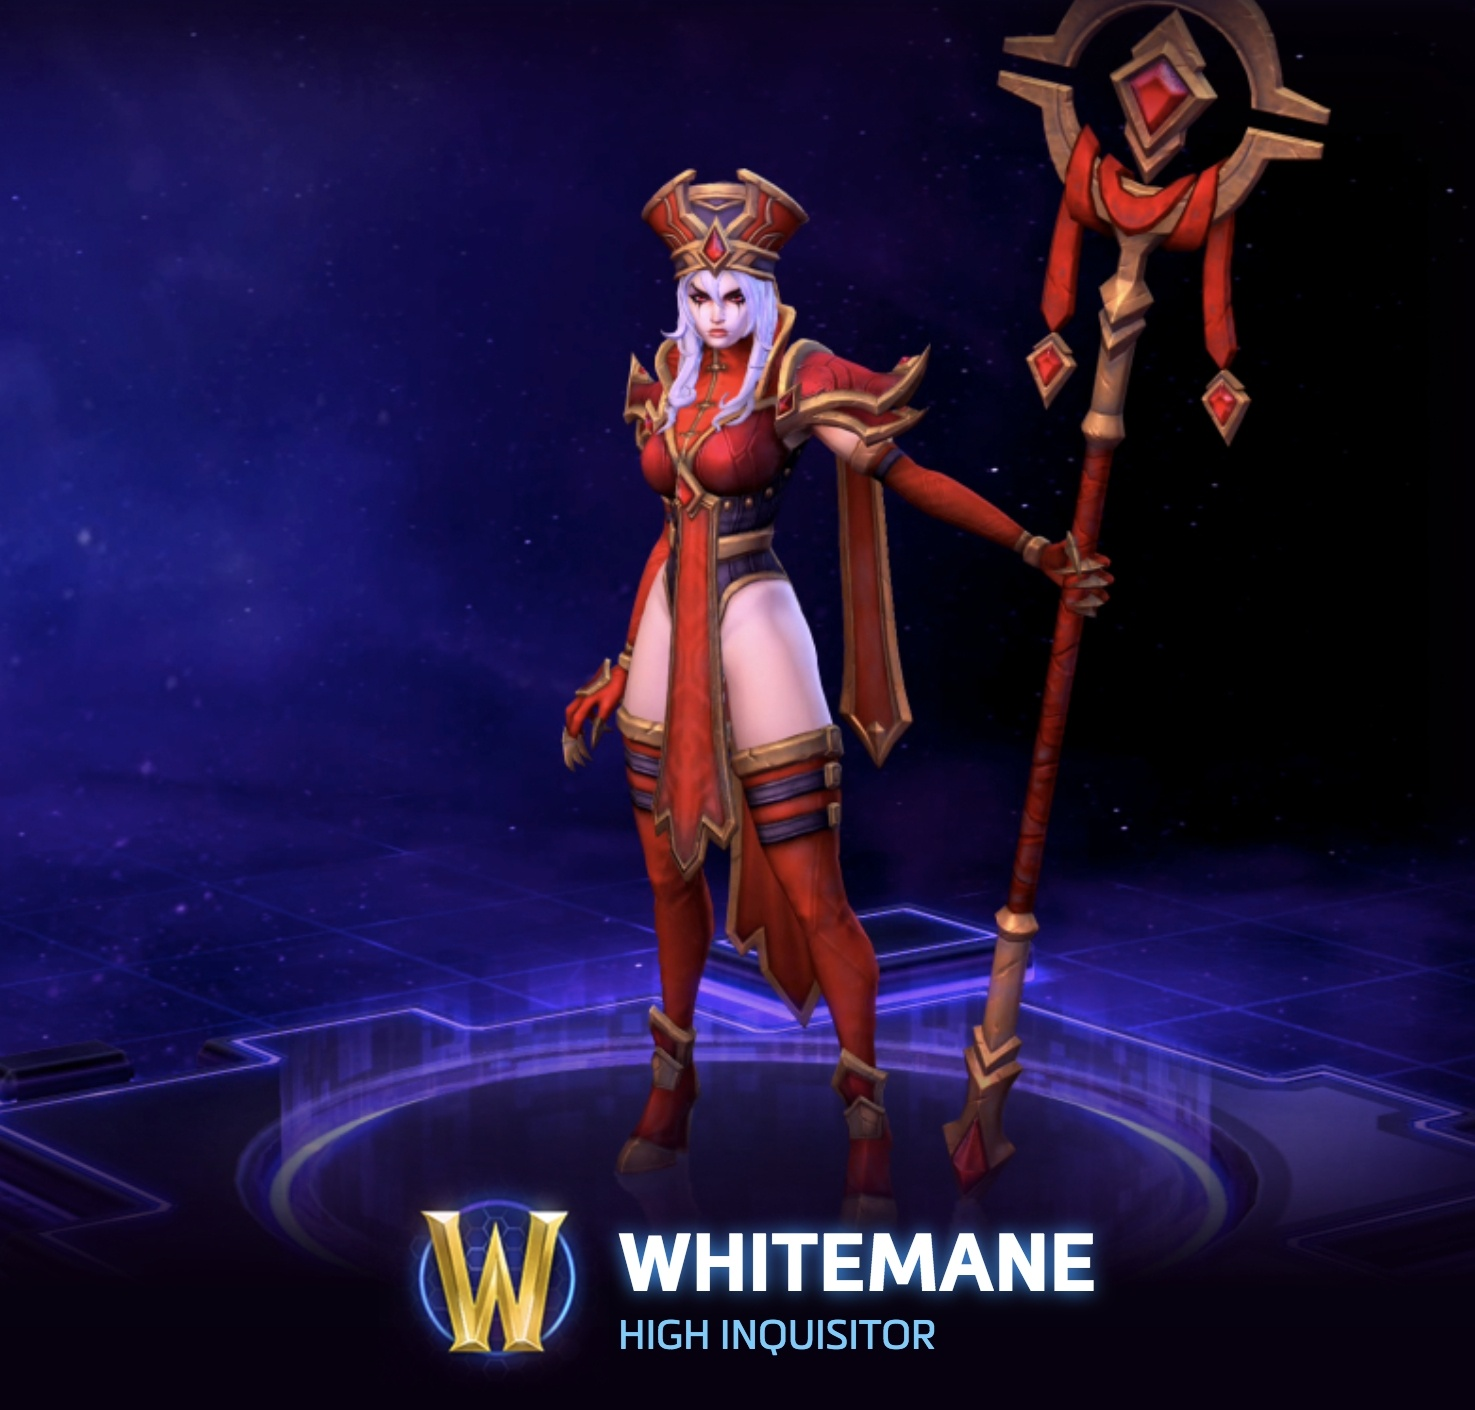 New Heroes Of The Storm Hero Revealed High Inquisitor Whitemane Wowhead News Find the best hots e.t.c. inquisitor whitemane